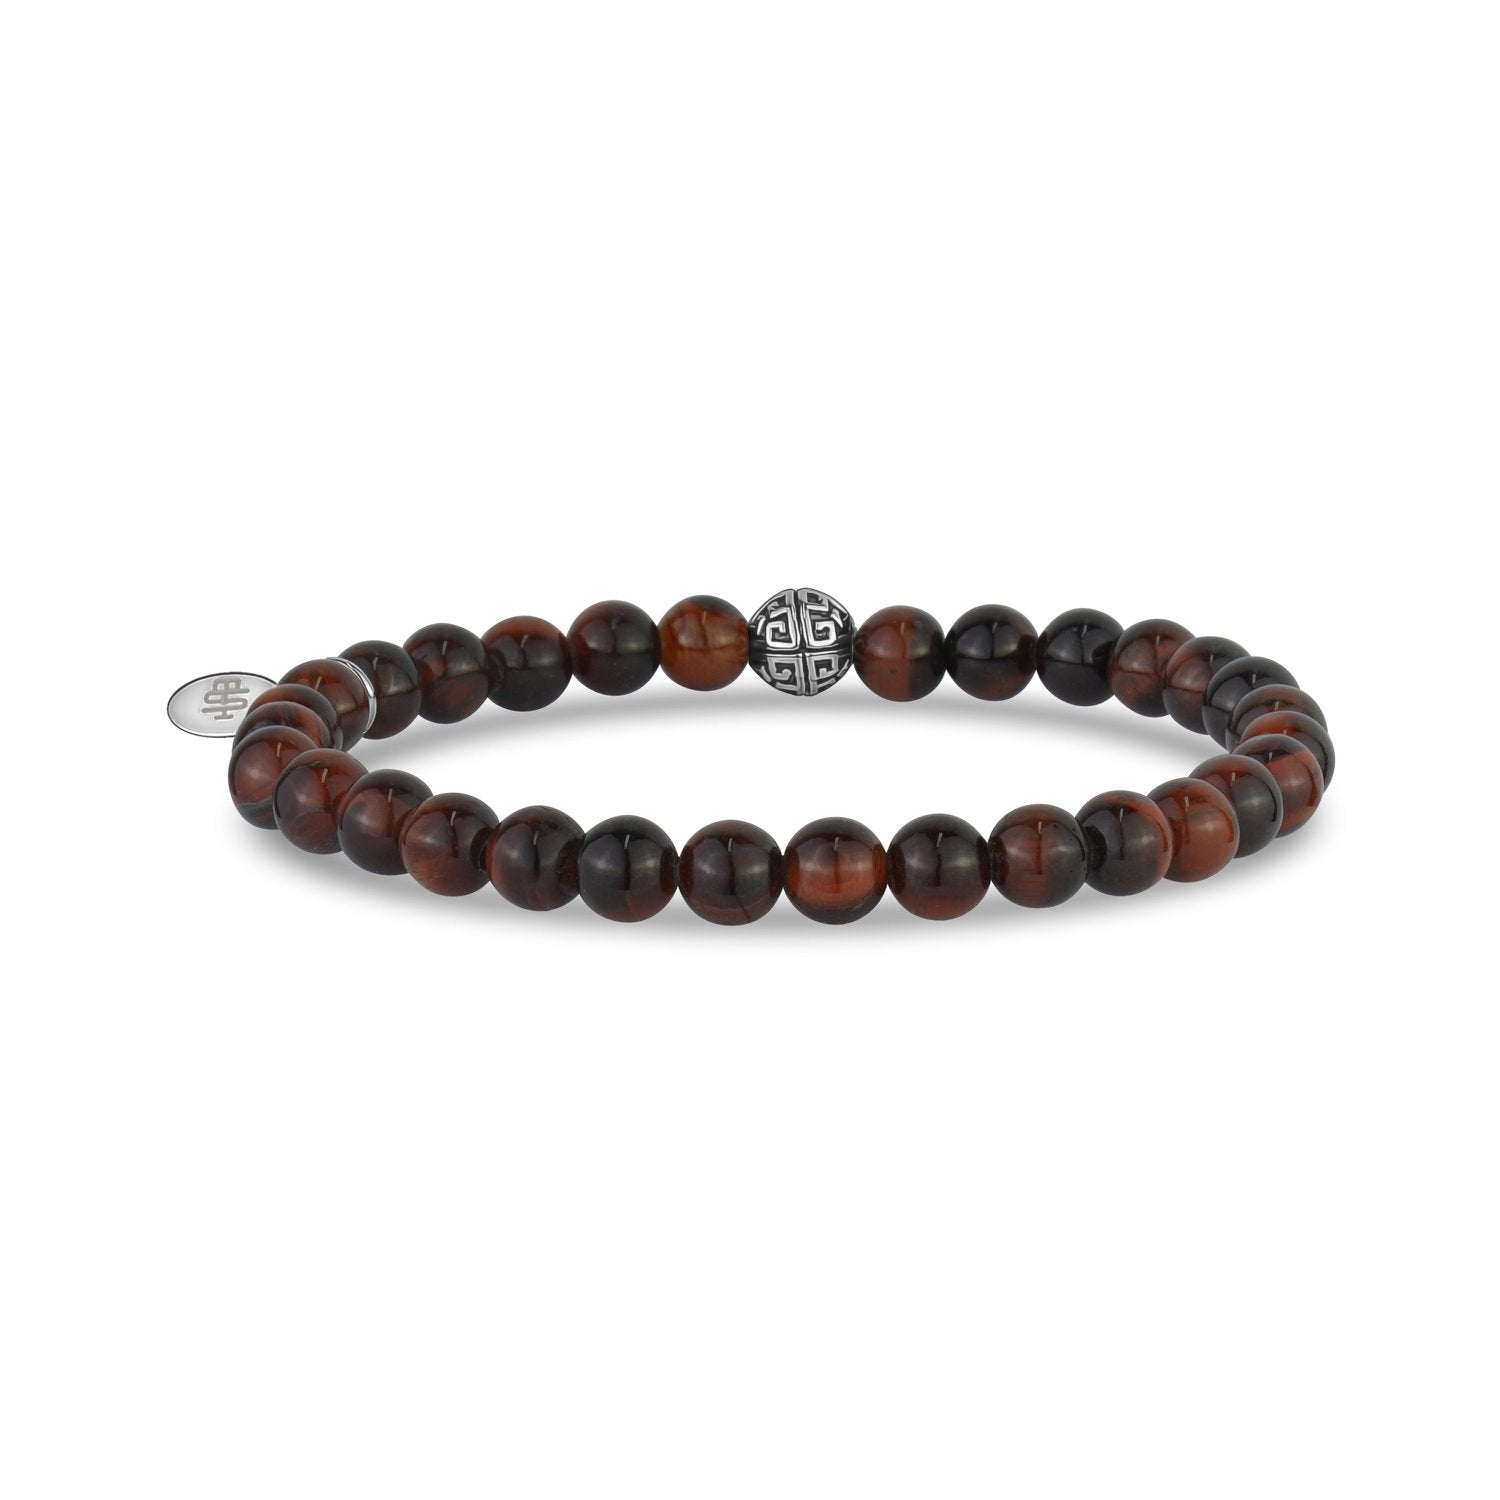 Unisex Bead Bracelet - 6mm Red Tiger Eye Stretch Bead Bracelet